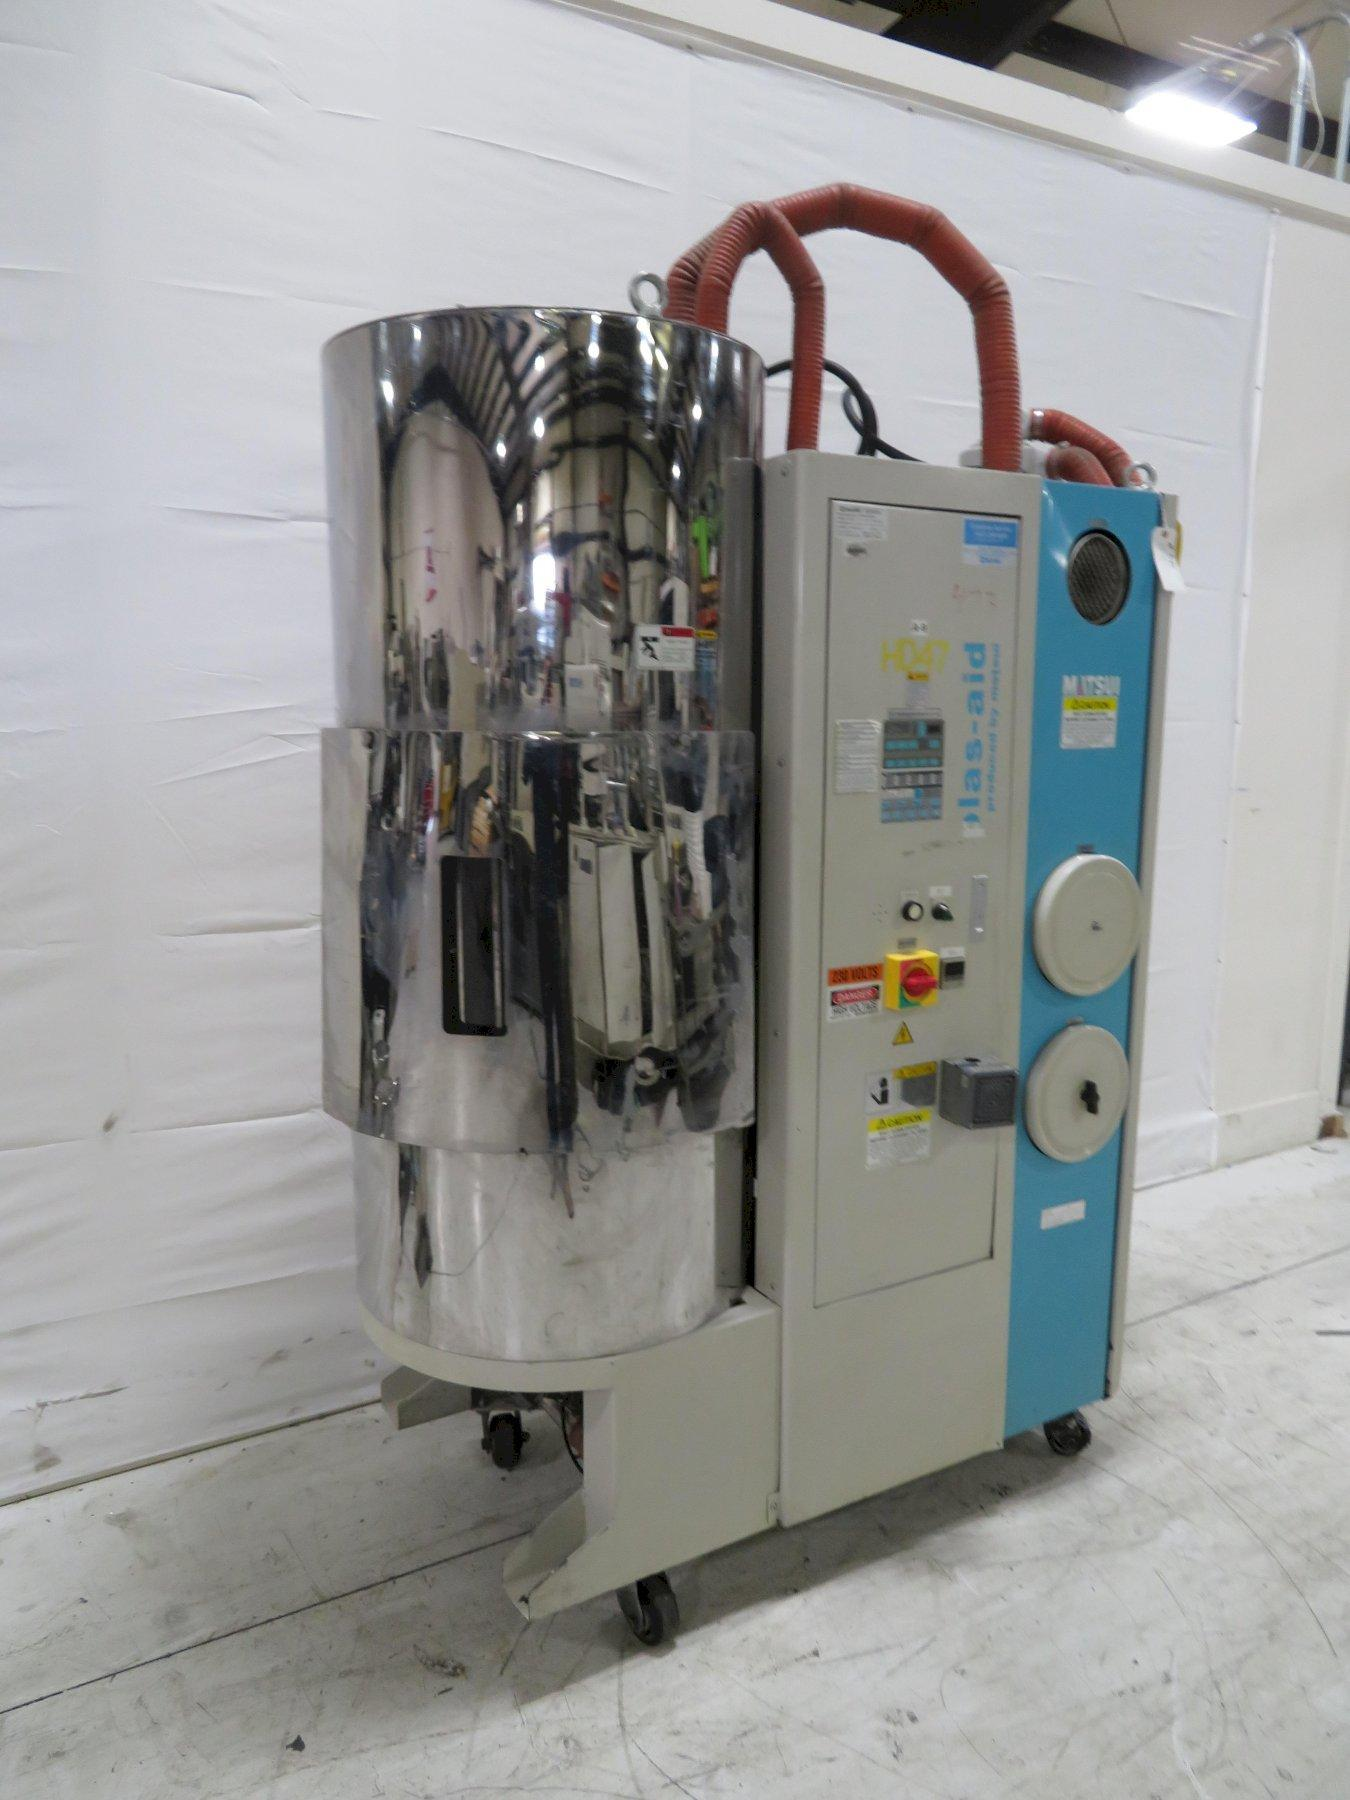 Matsui MJ3-200-U Material Dryer with Hopper, Desiccant, Approx 200 lb/hr, 230V, Yr. 2010